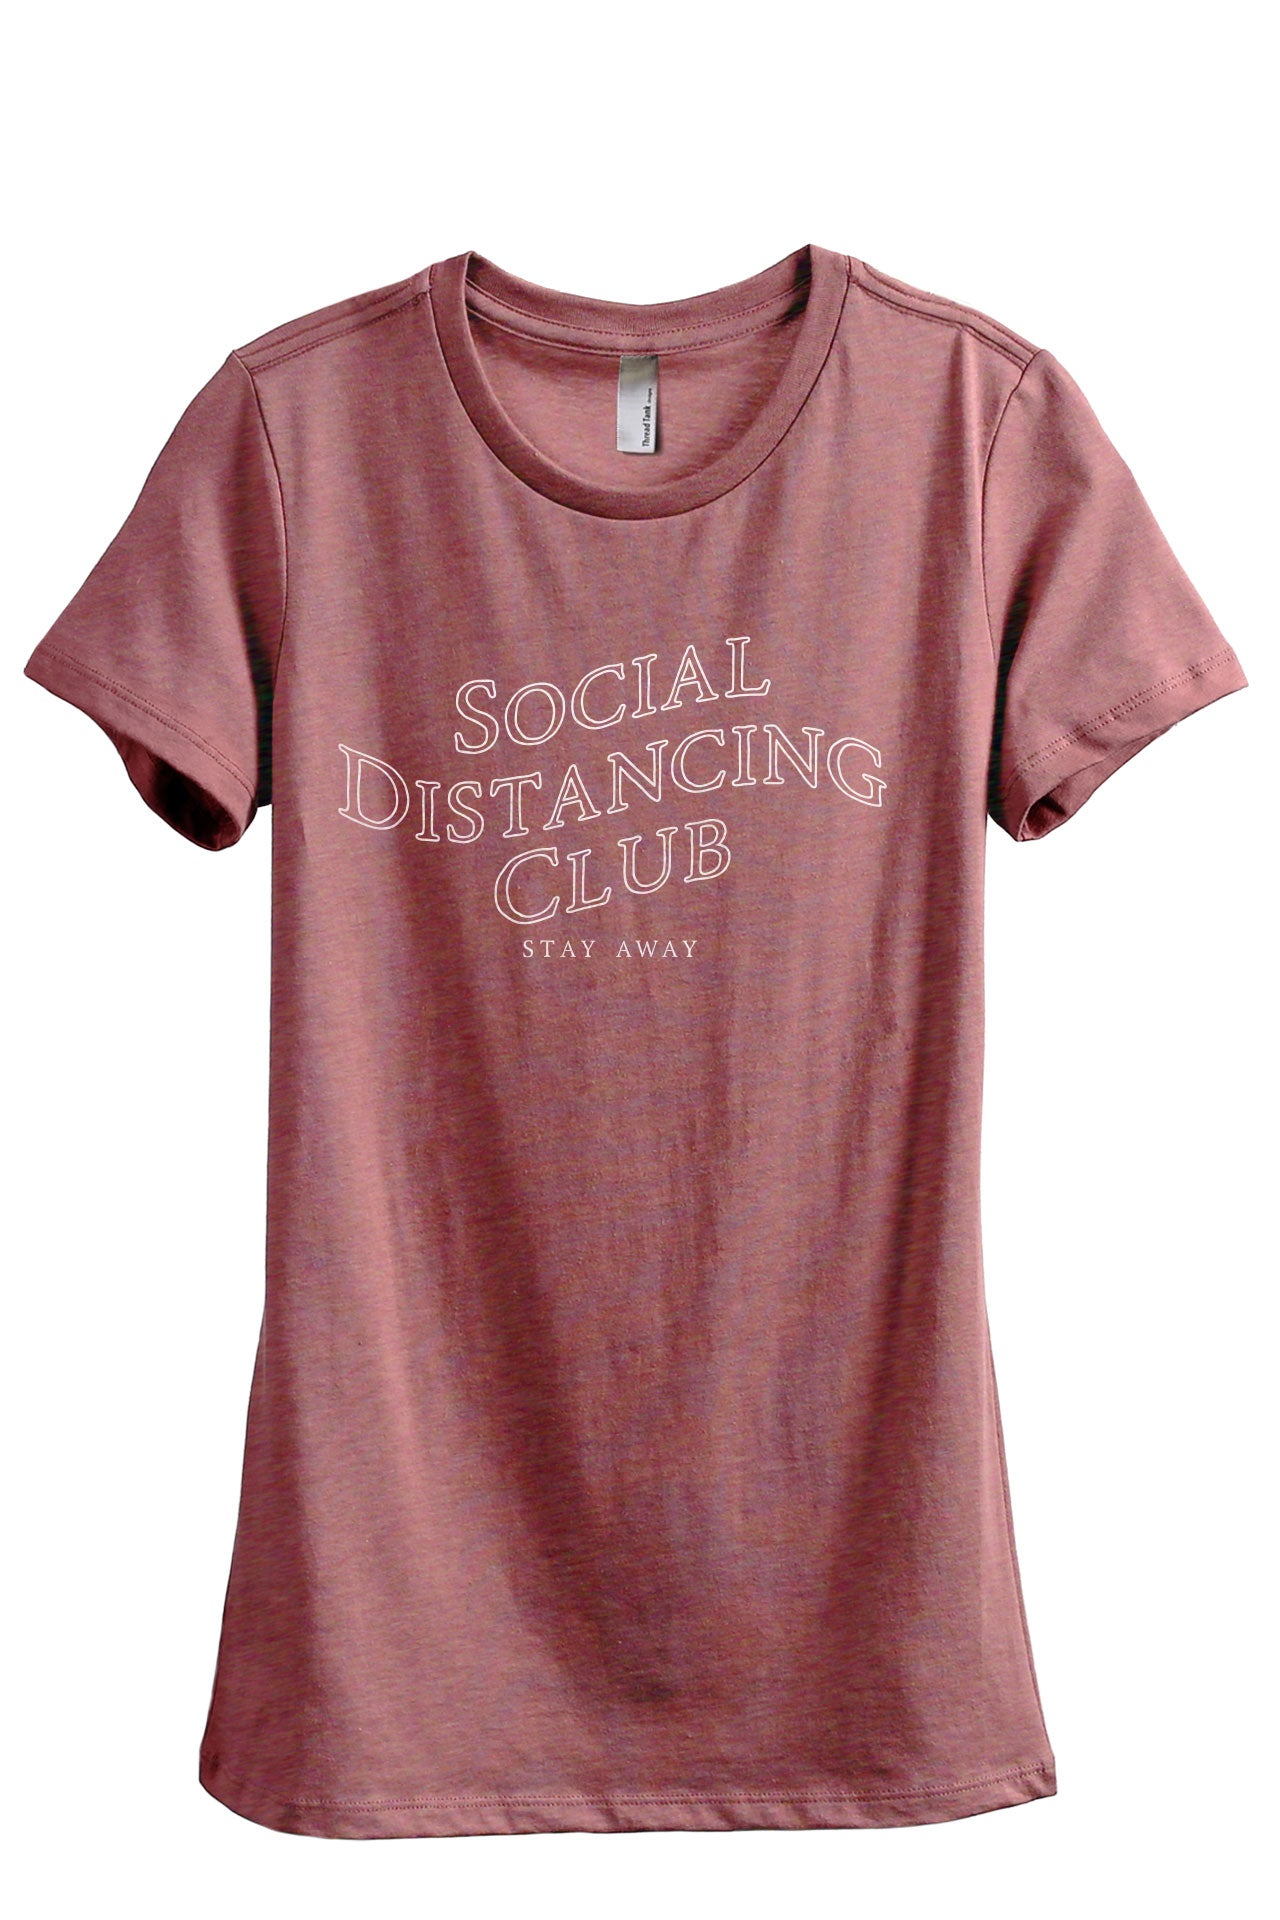 Social Distancing Club Women's Relaxed Crewneck T-Shirt Top Tee Heather Rouge